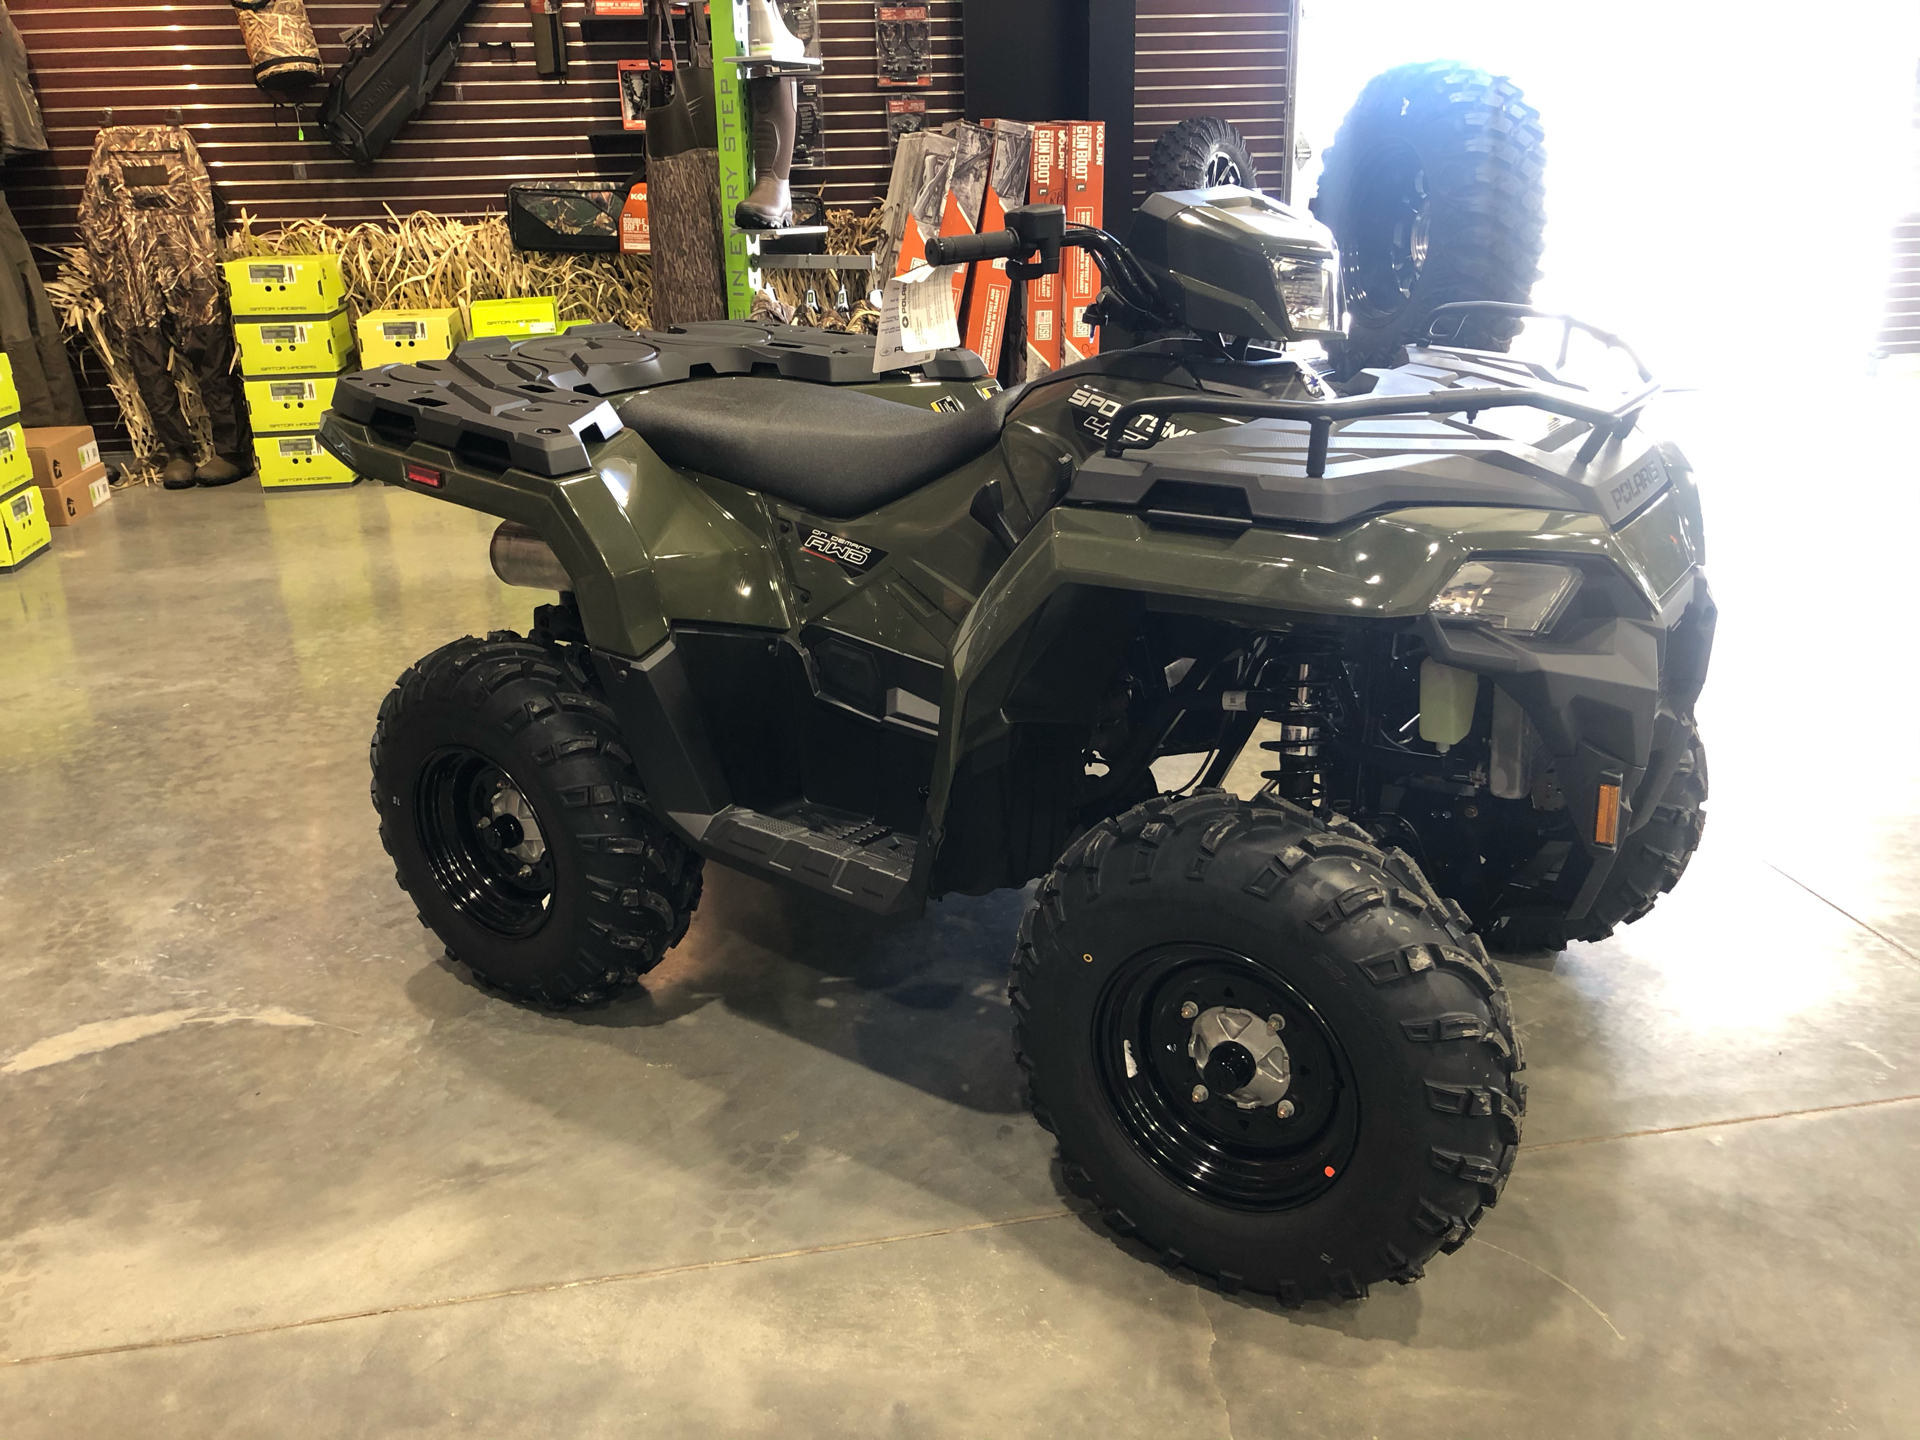 2021 Polaris Sportsman 450 H.O. in Conway, Arkansas - Photo 3